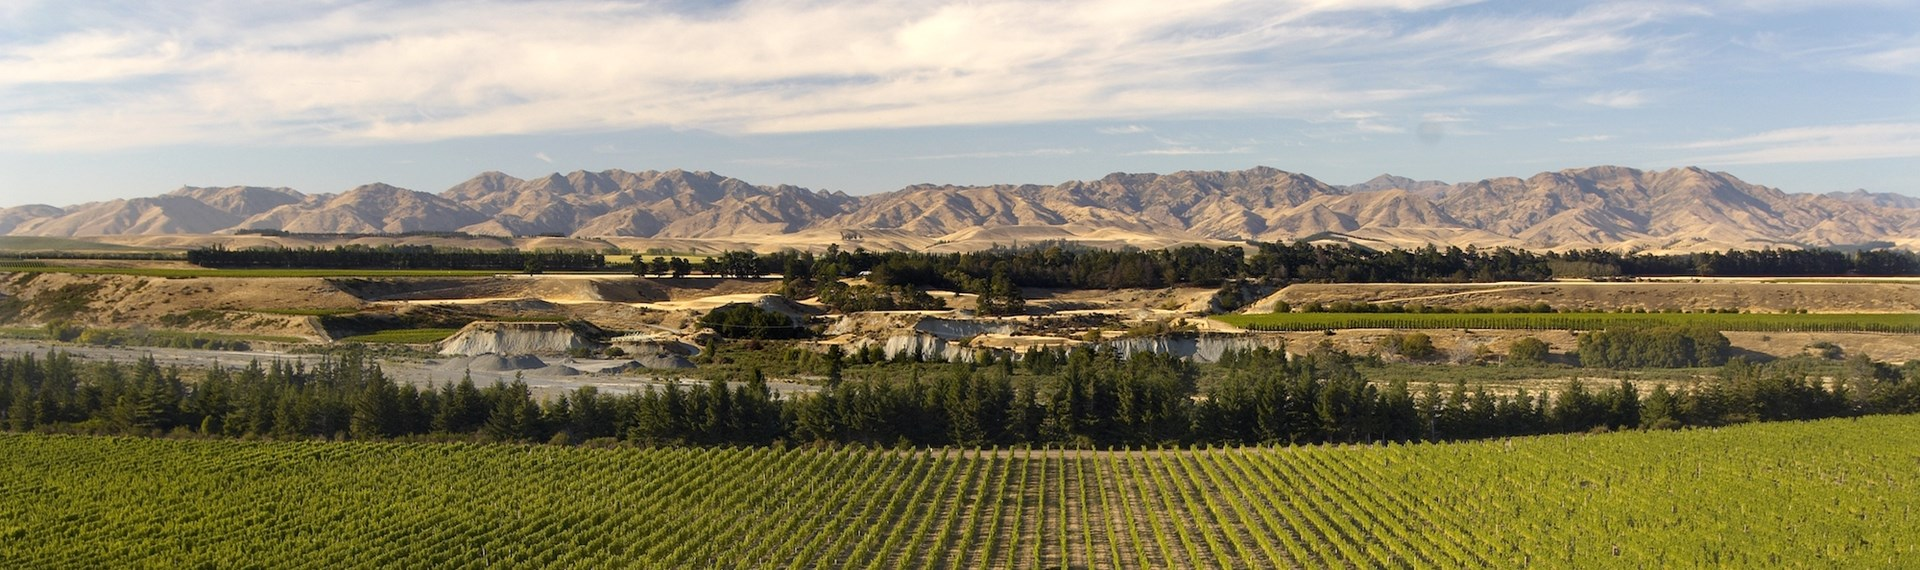 Marlborough's picturesque vineyards with the hills bordering the background, near Blenheim in Marlborough at the top of New Zealand's South Island.